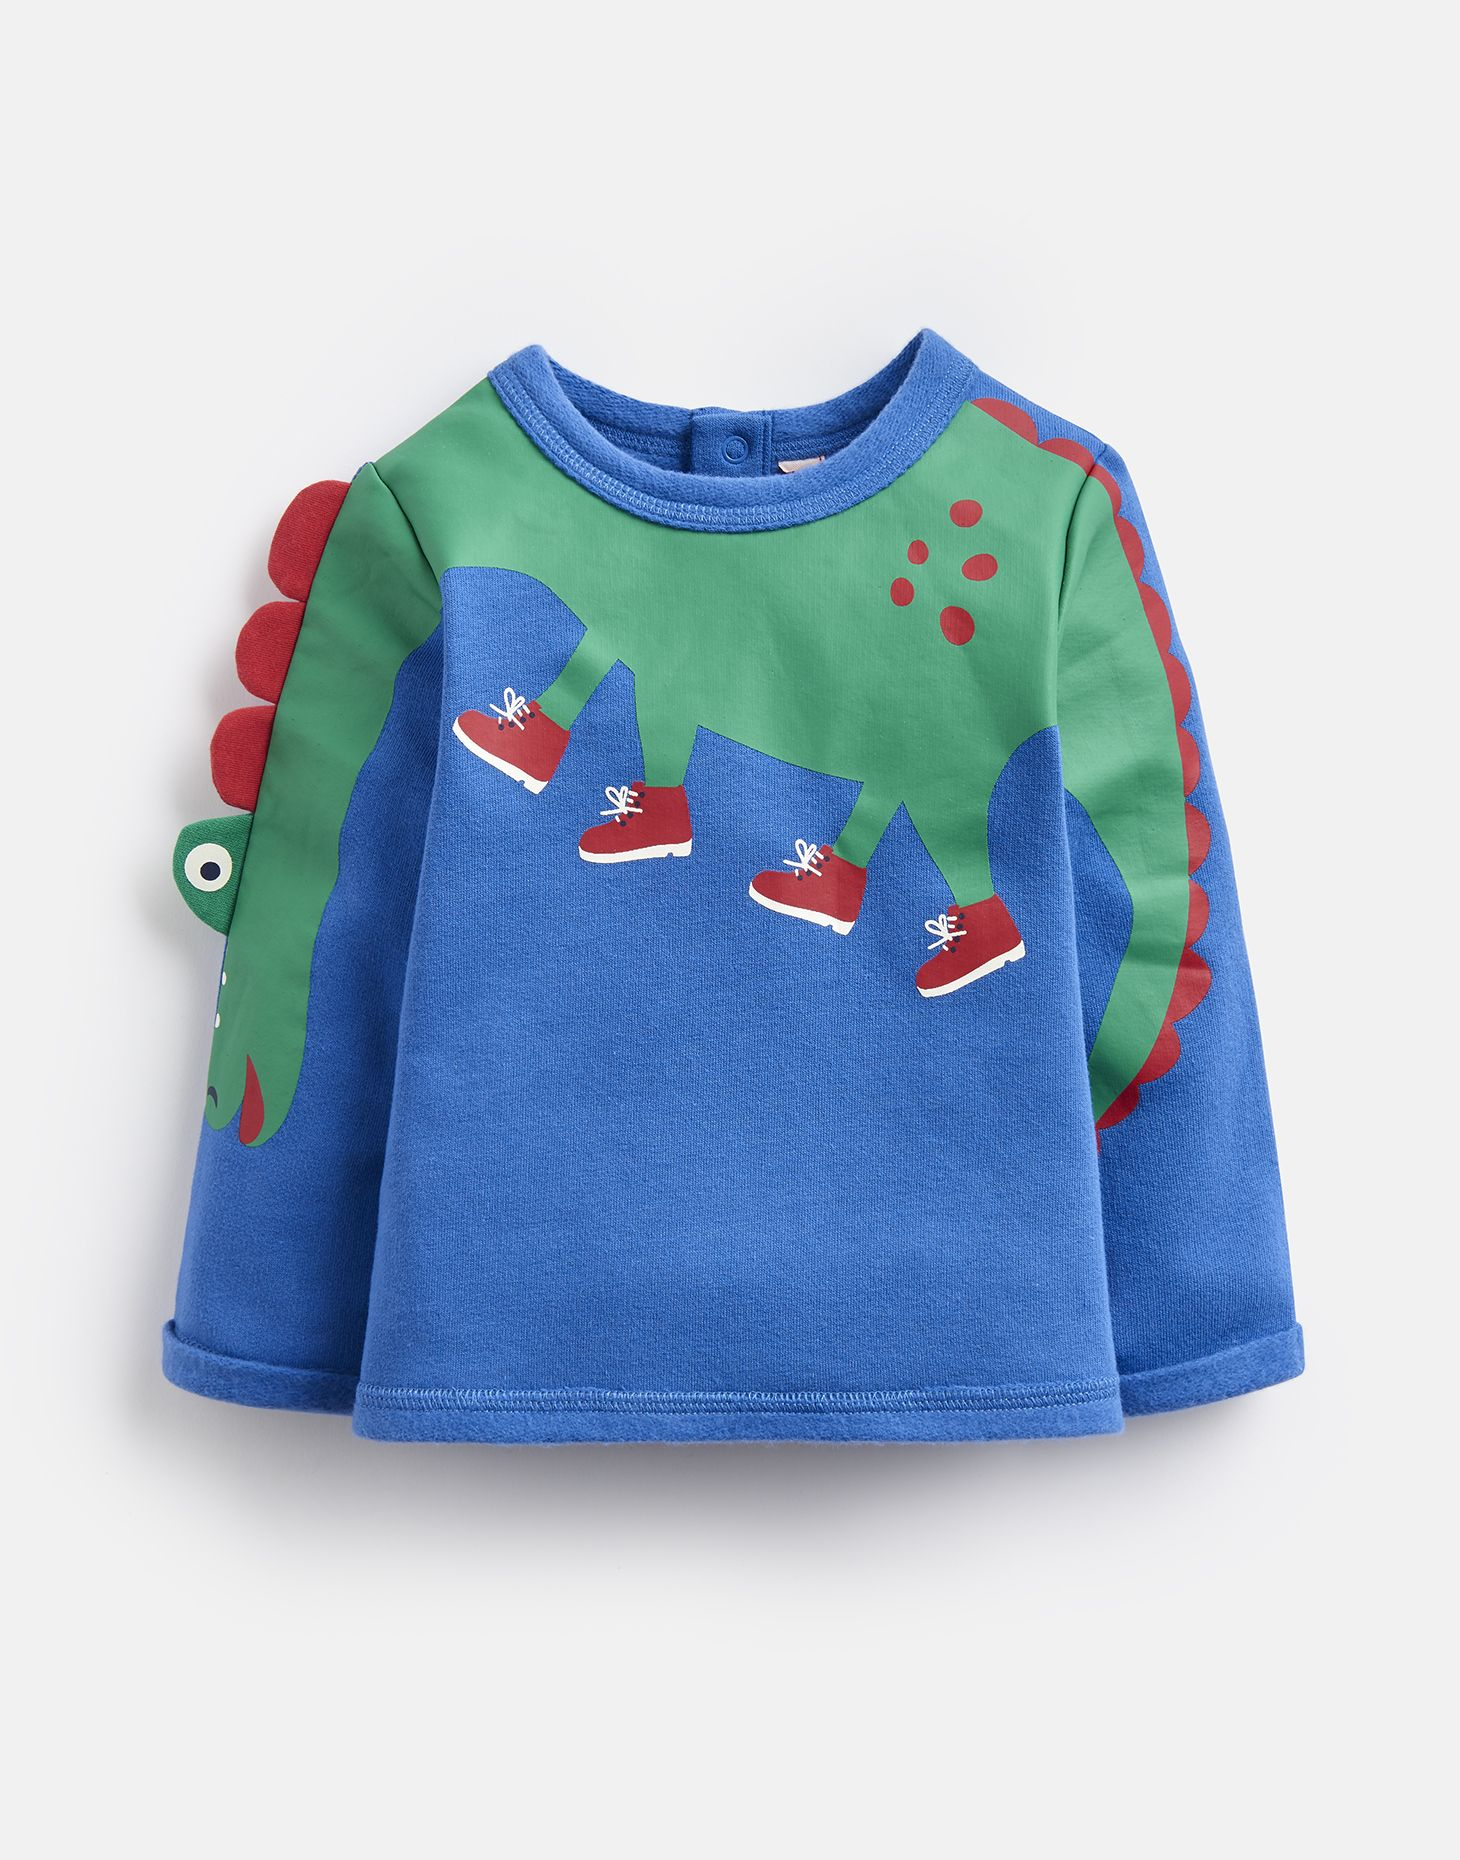 Joules Baby Boo Applique Sweater in BLUE DINO ARM